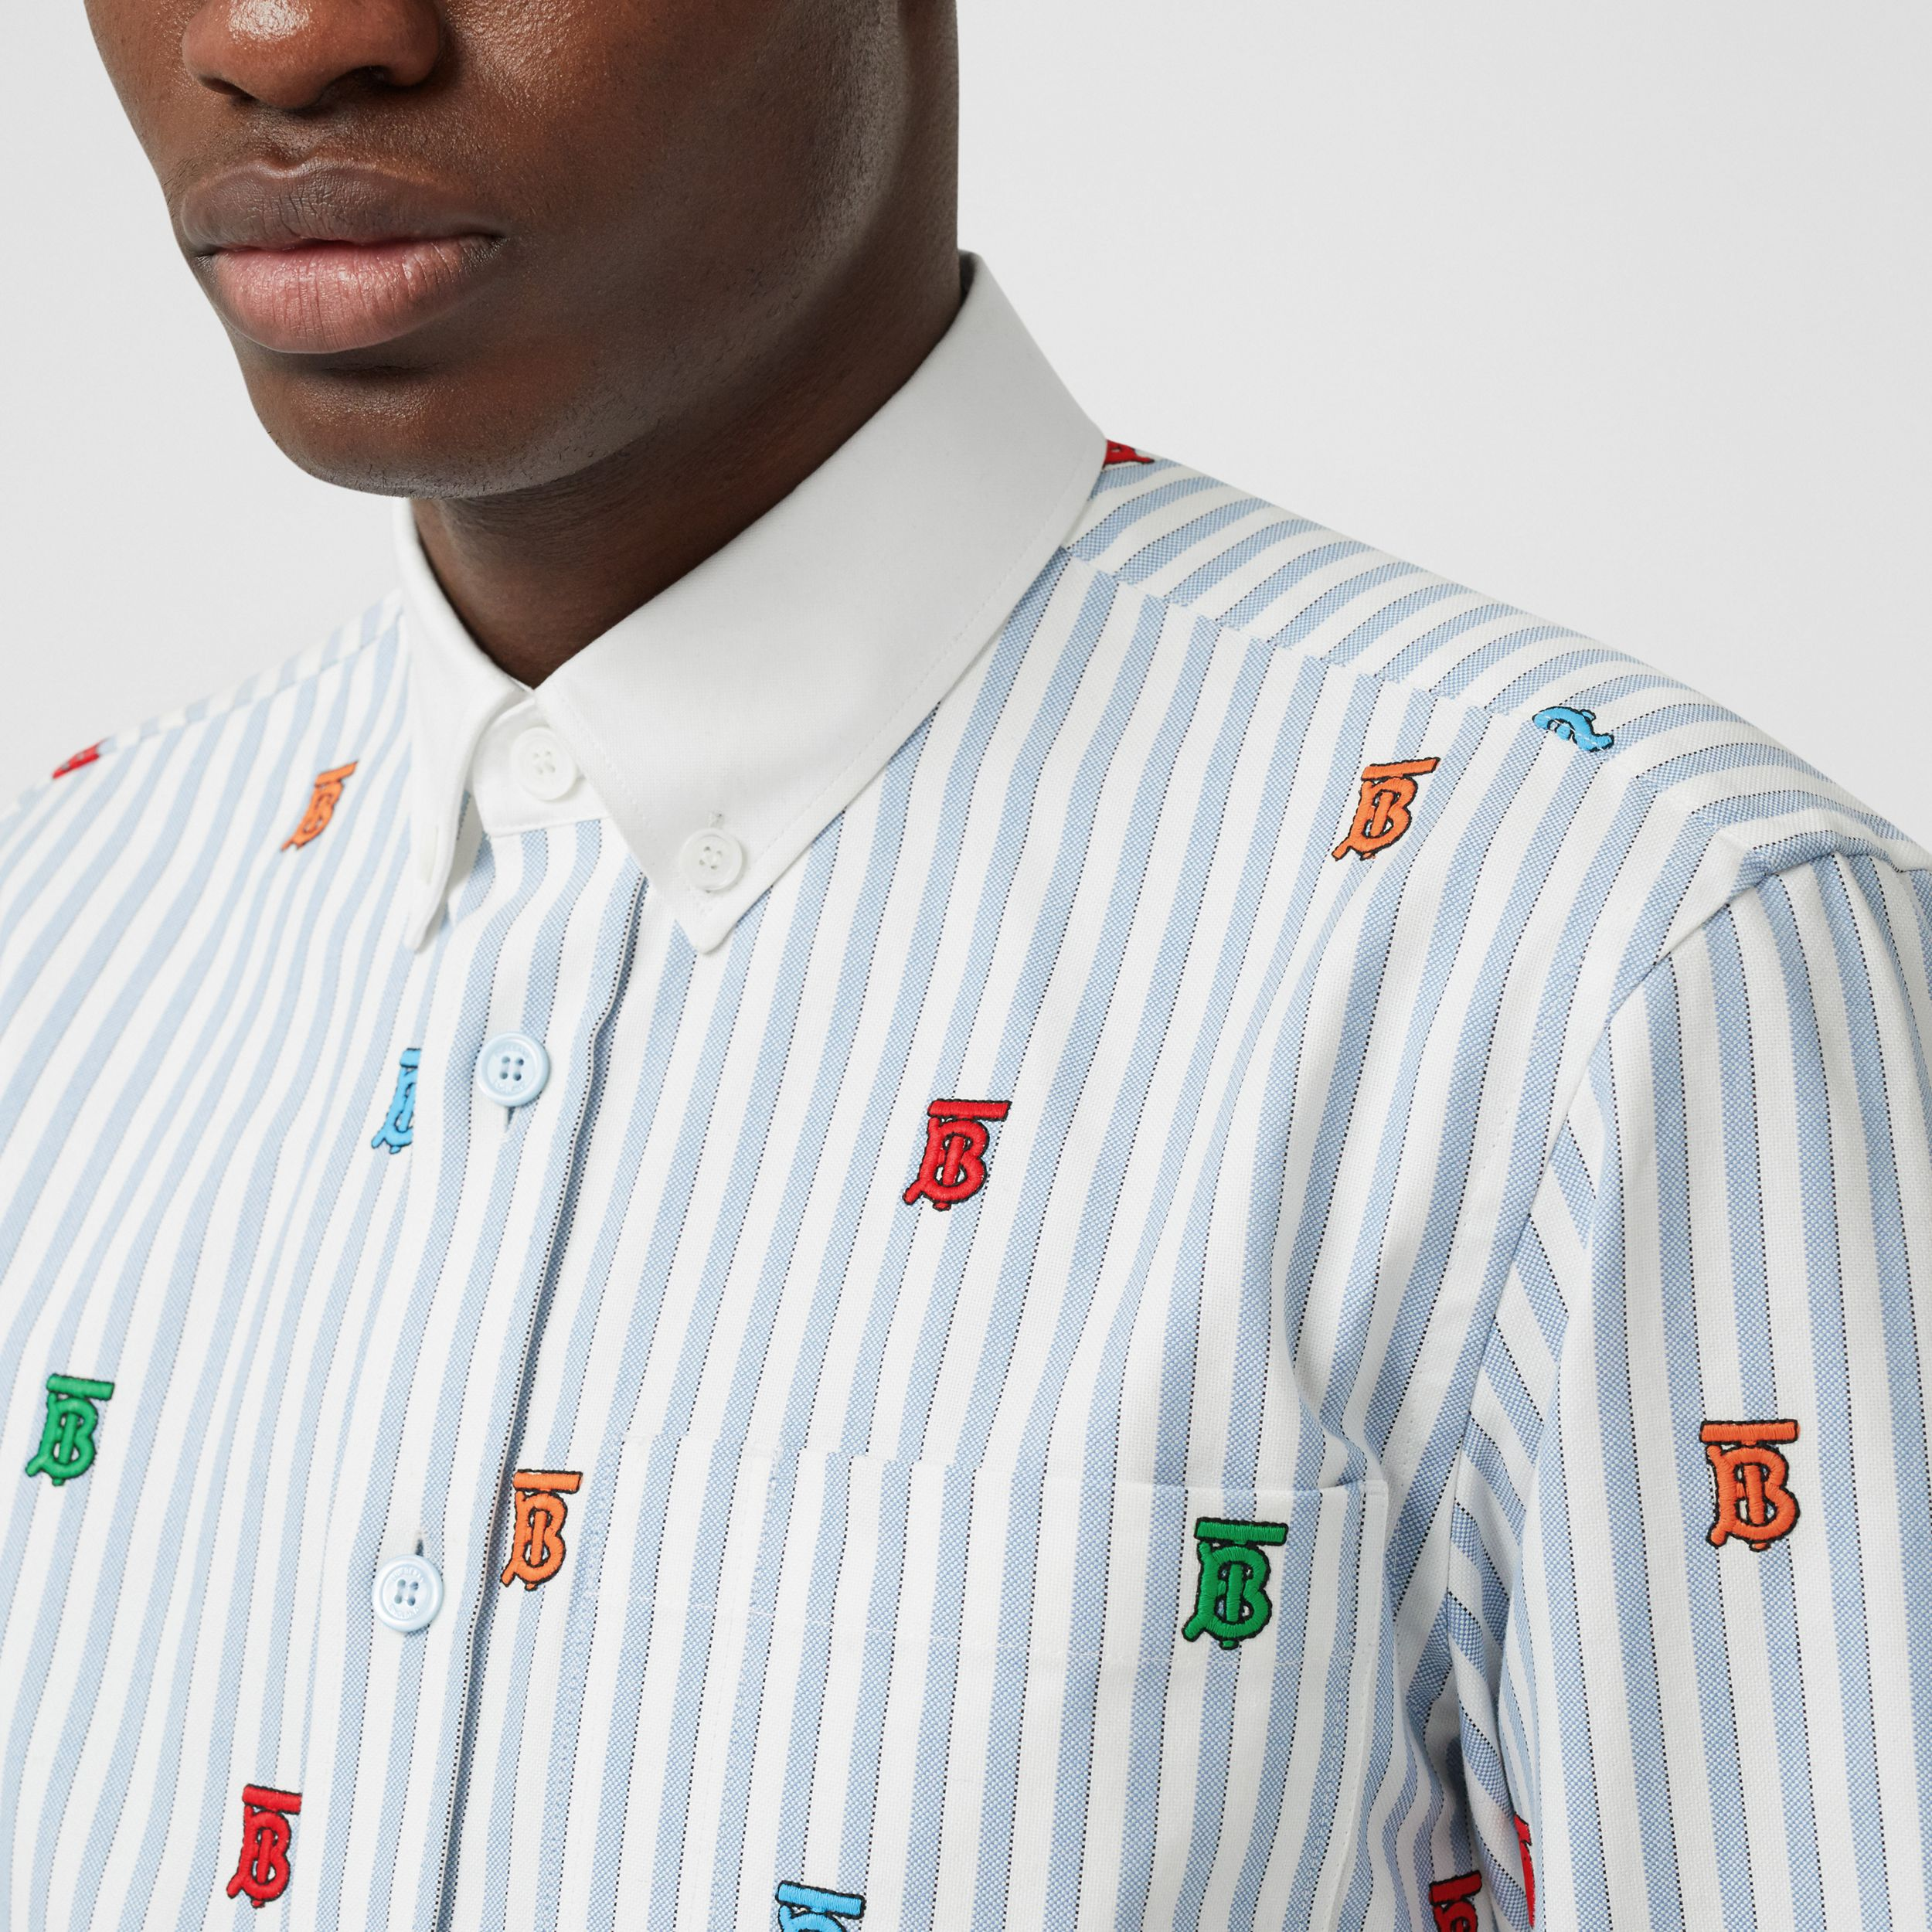 Monogram Motif Pinstriped Cotton Oxford Shirt in Mid Blue - Men | Burberry - 2